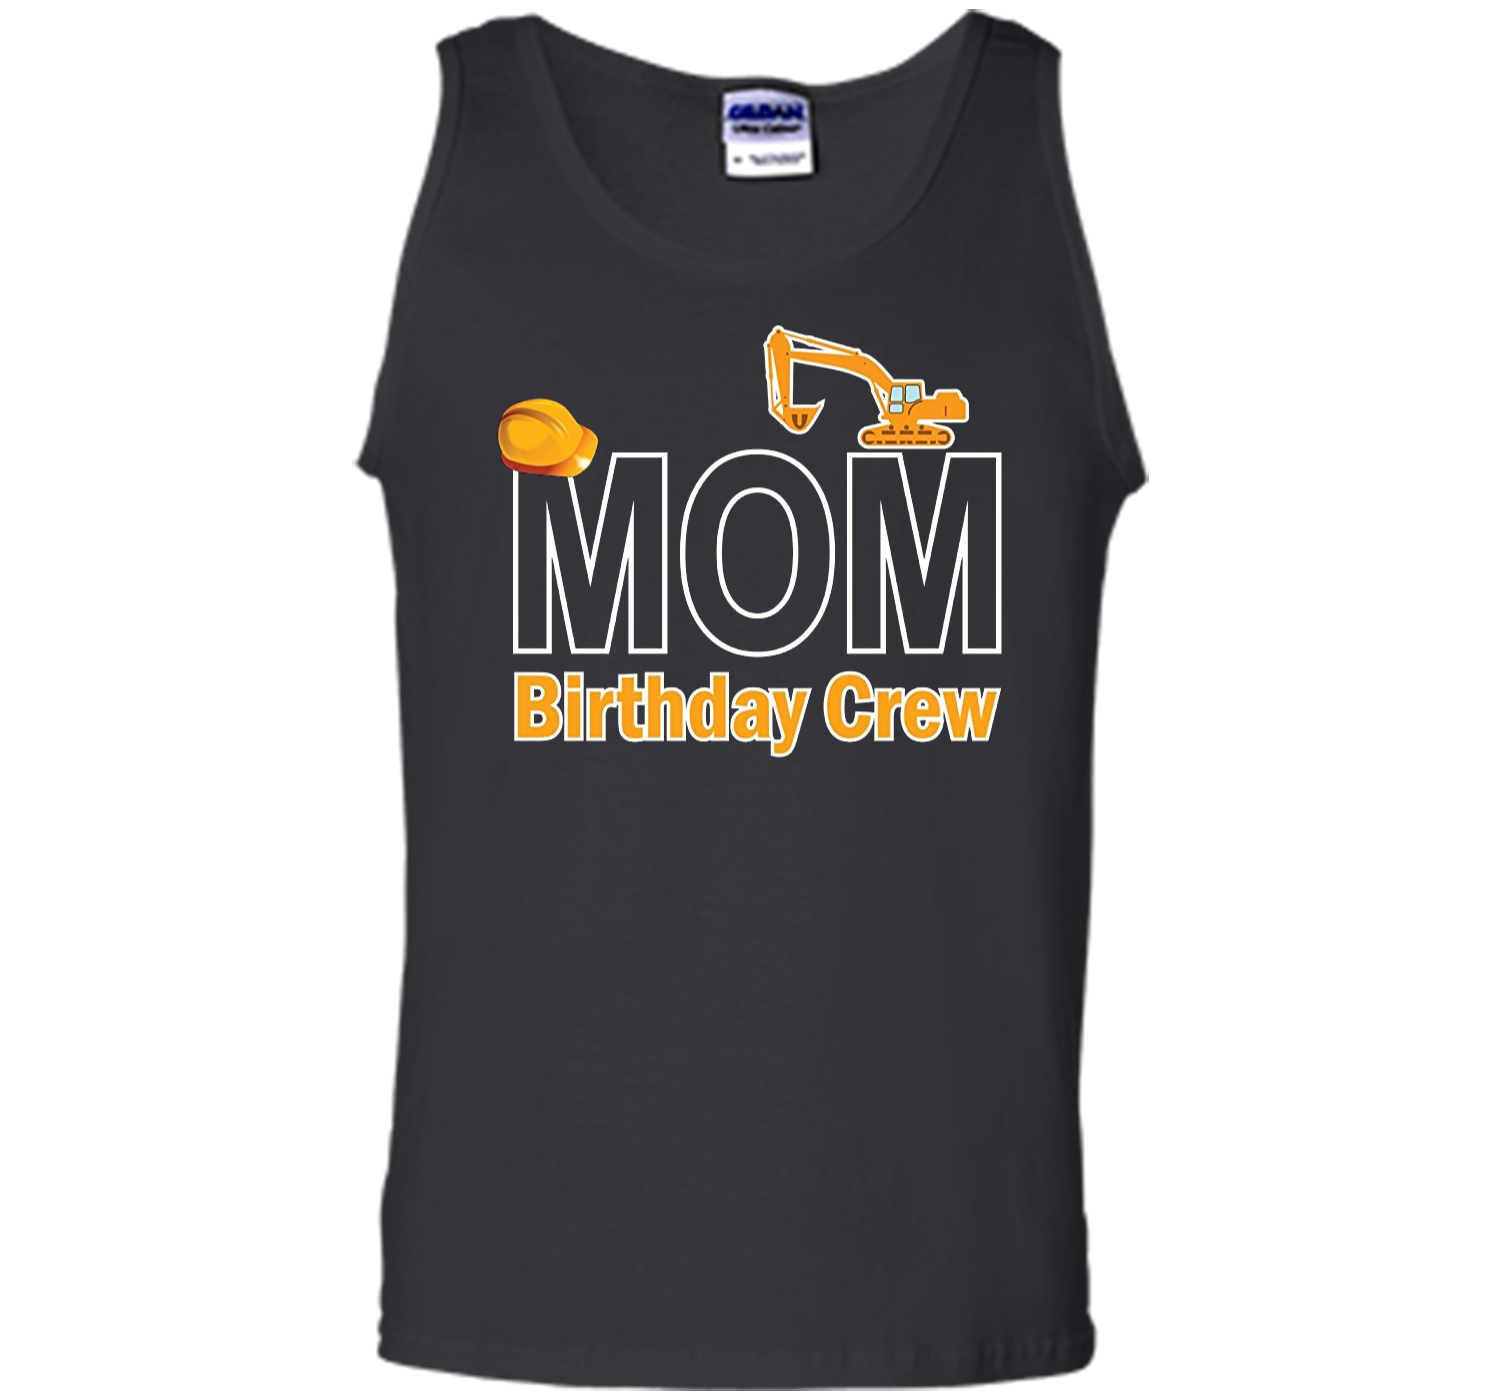 Mom Birthday Crew Shirts For Construction Party Tank Top